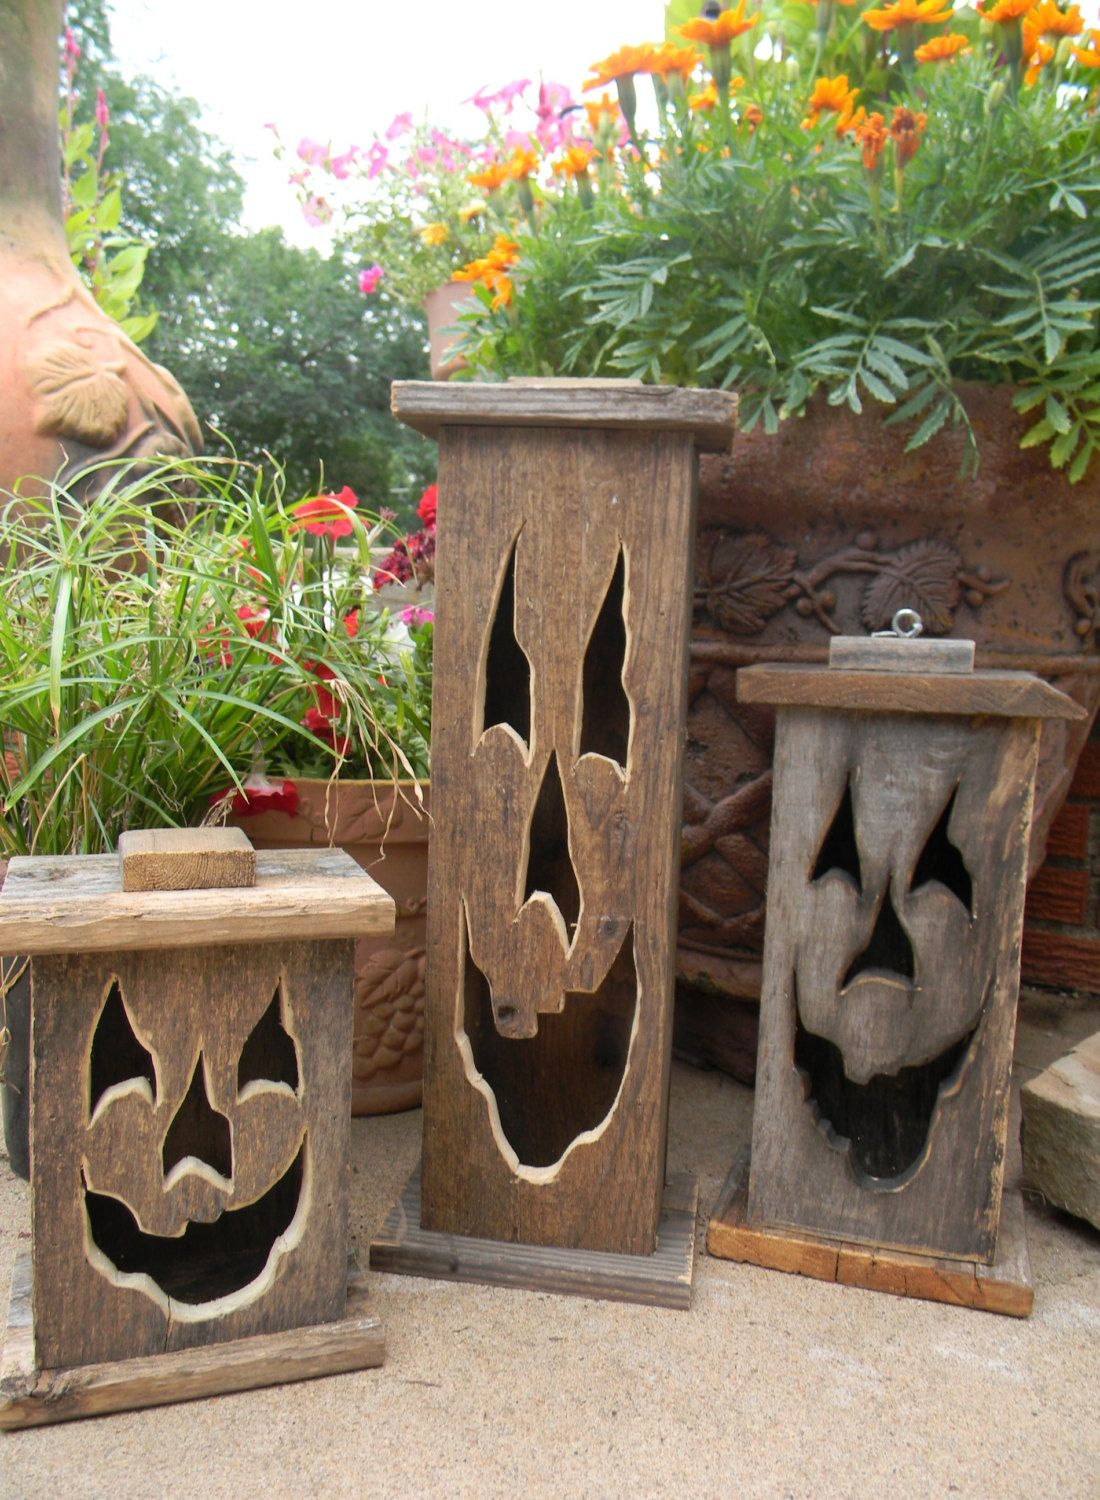 Wooden halloween yard decorations - Millersart Wood Lantern Made With Rustic Worn Wood Jack O Lantern For Halloween Fall Art Decor For The Patio Or Front Porch By Artist Bill Miller